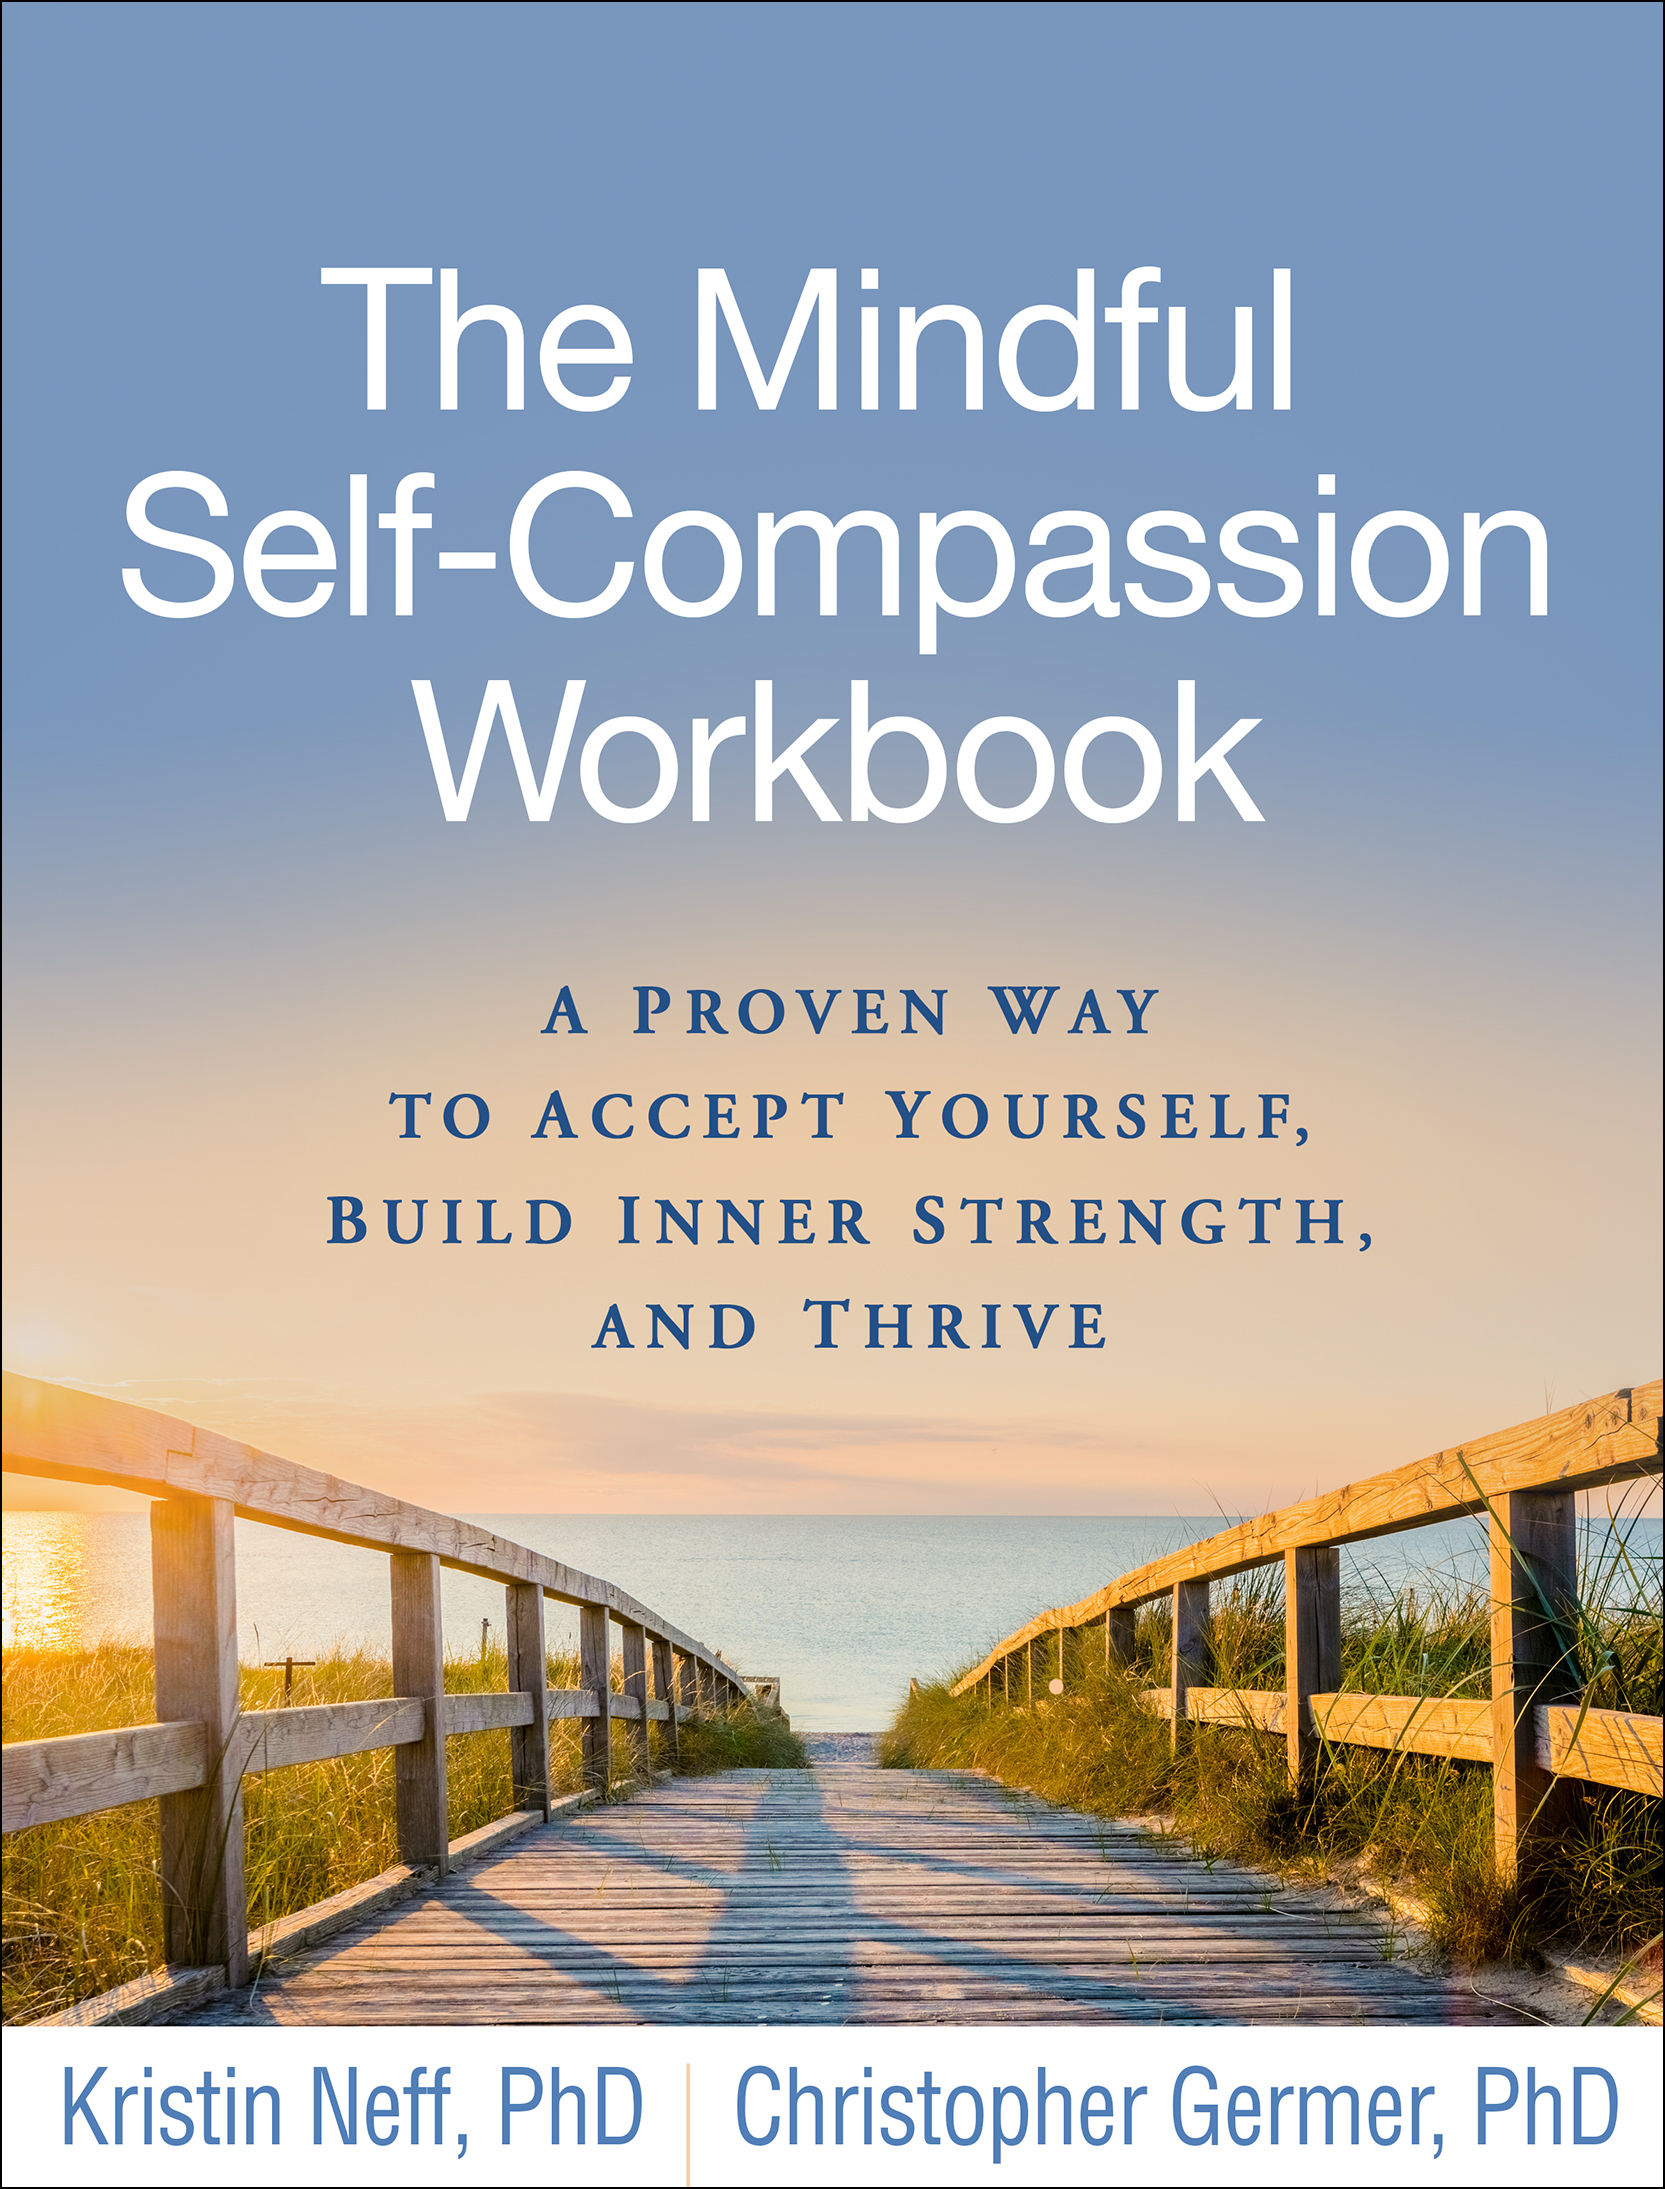 The Mindful Self-Compassion Workbook A Proven Way to Accept Yourself Build Inner Strength and Thrive by Kristin Neff Christ